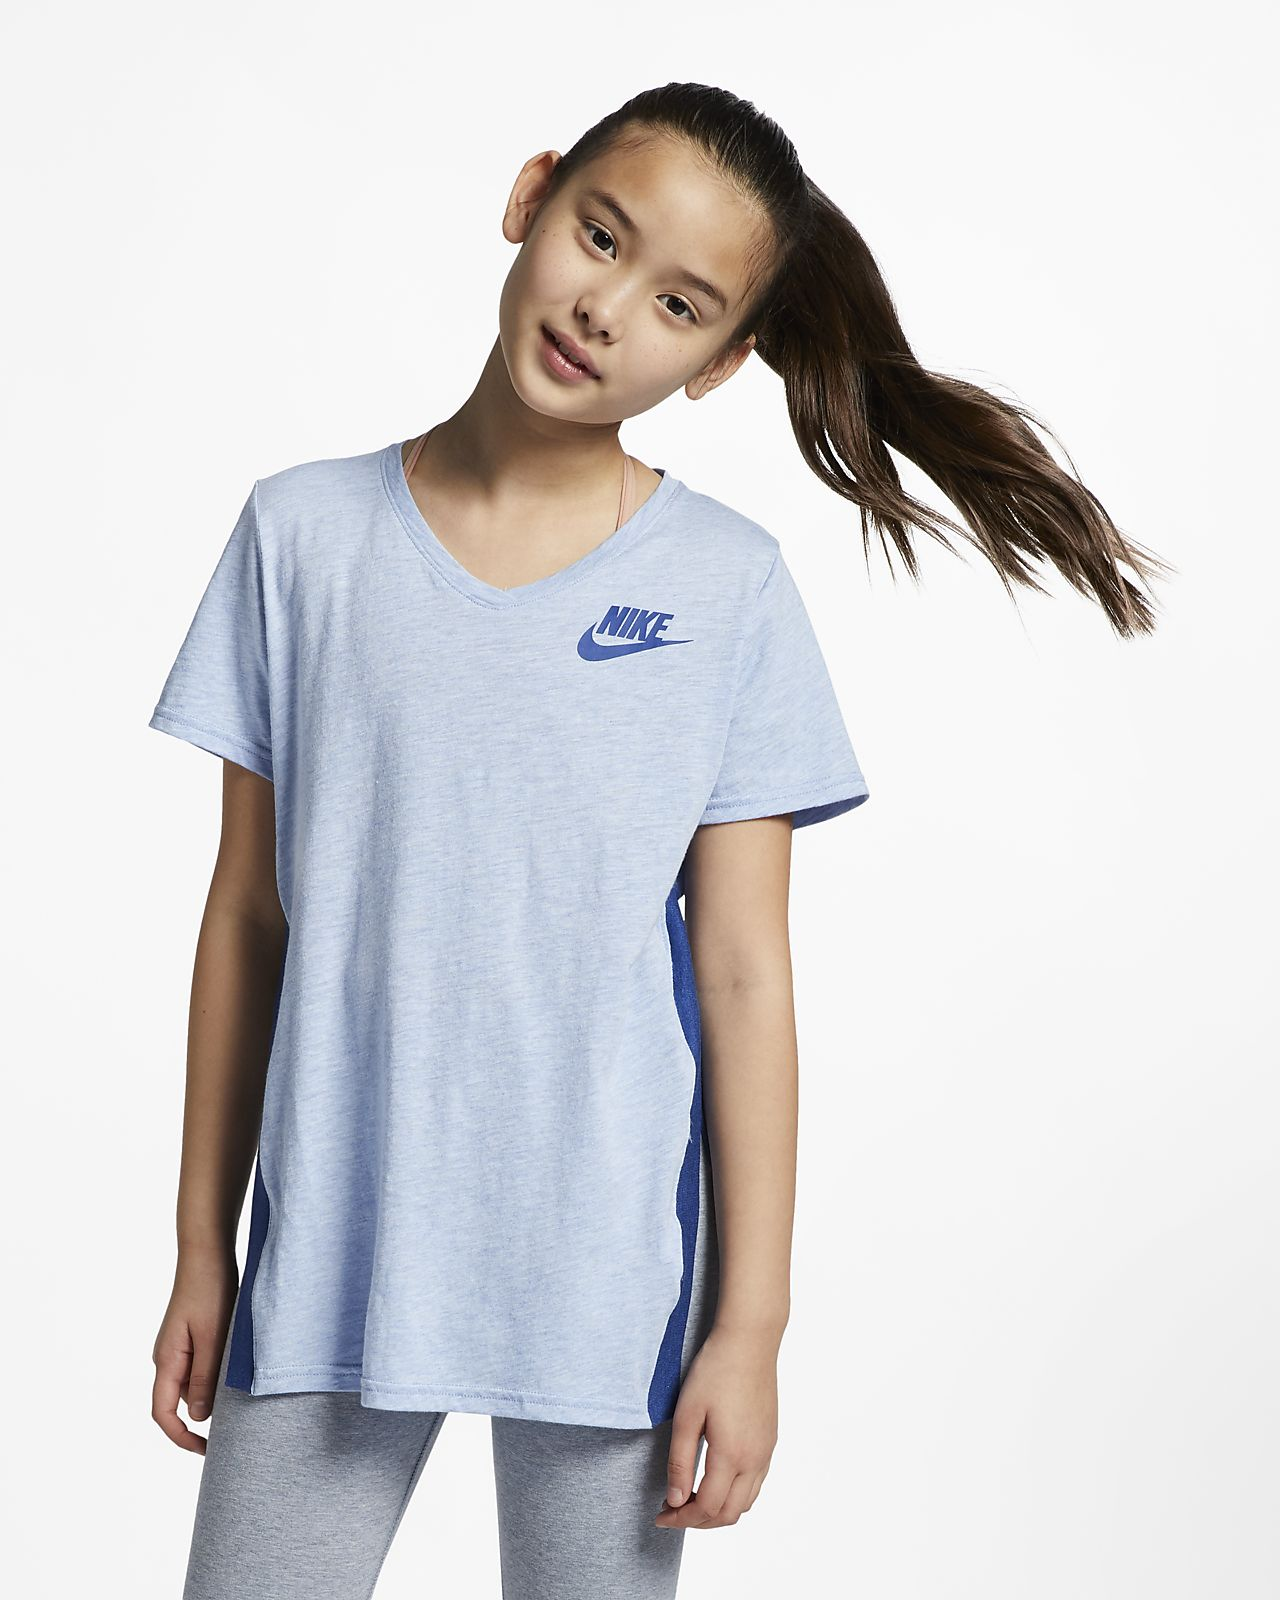 Nike Sportswear Big Kids' (Girls') Short-Sleeve Top